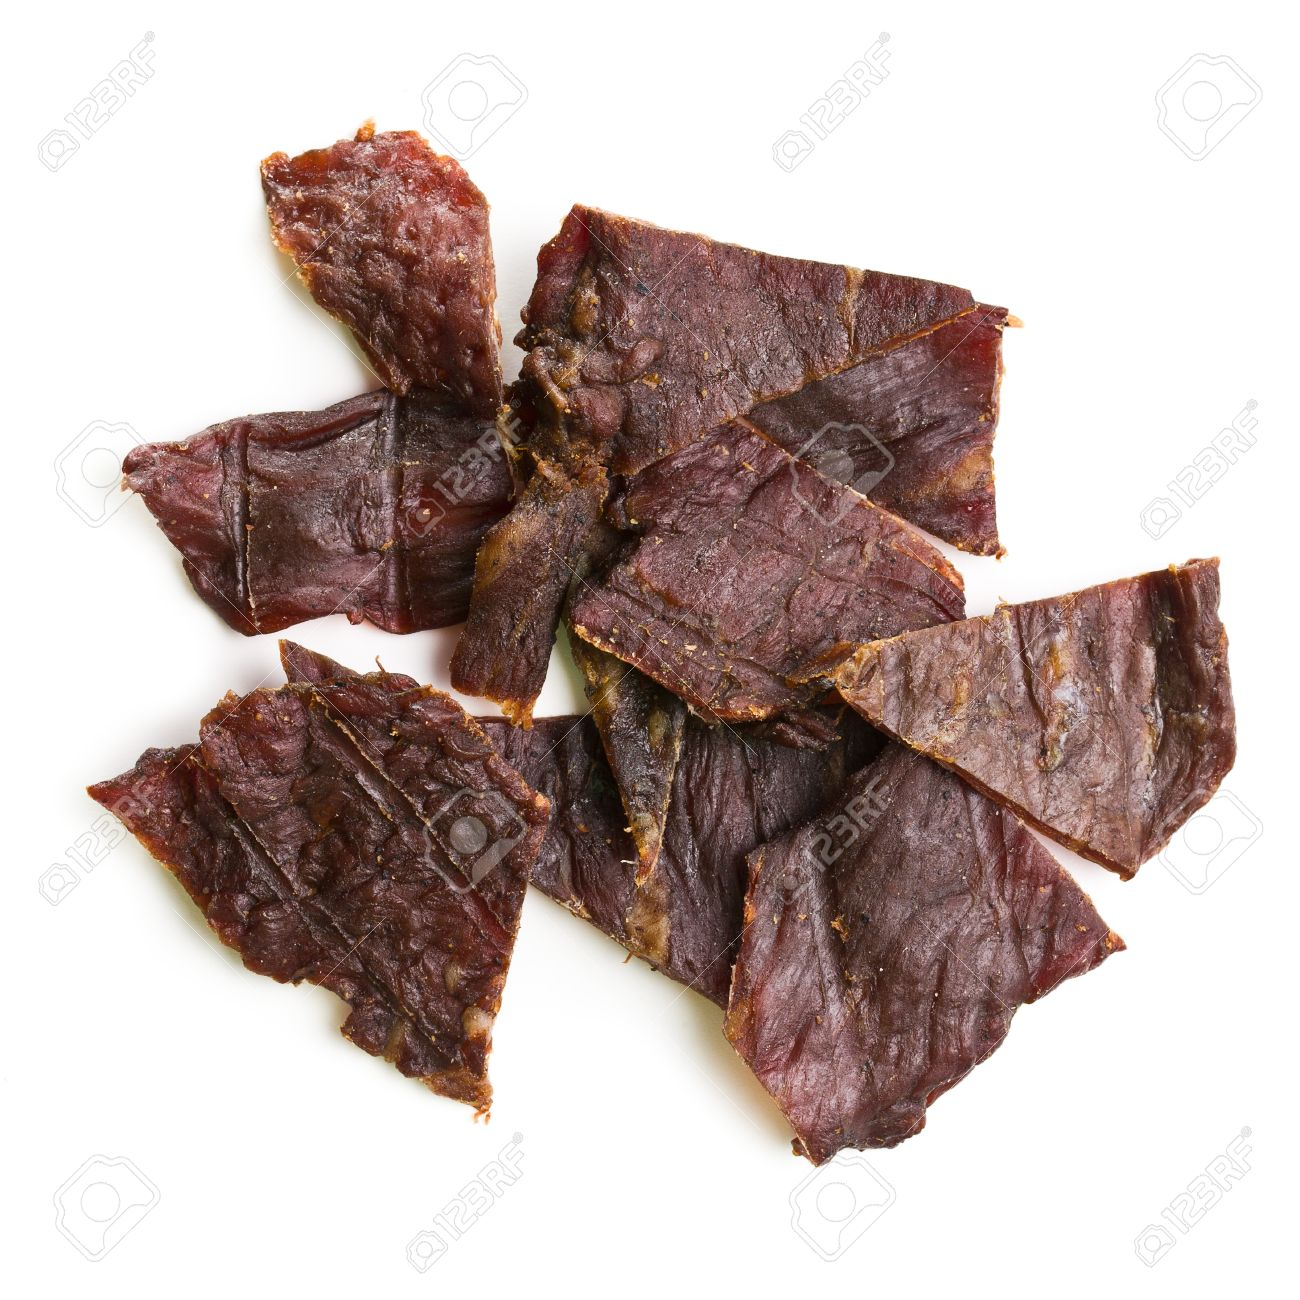 Beef jerky clipart 8 » Clipart Station.